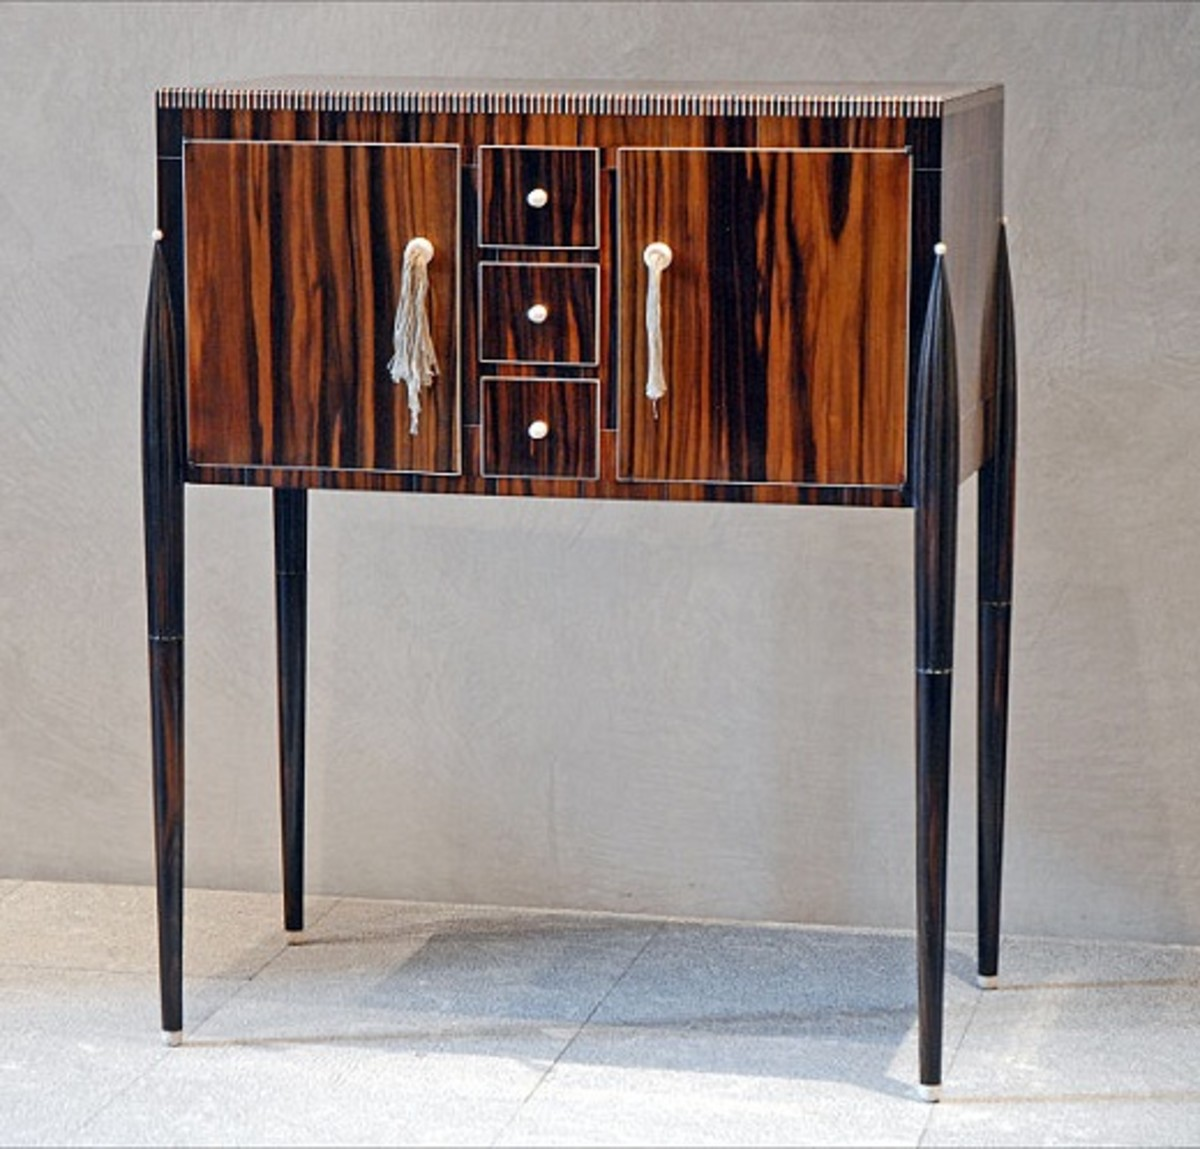 A cabinet by Jacques-Emile Ruhlmann in the Musée des Beaux-Arts de Lyon, France